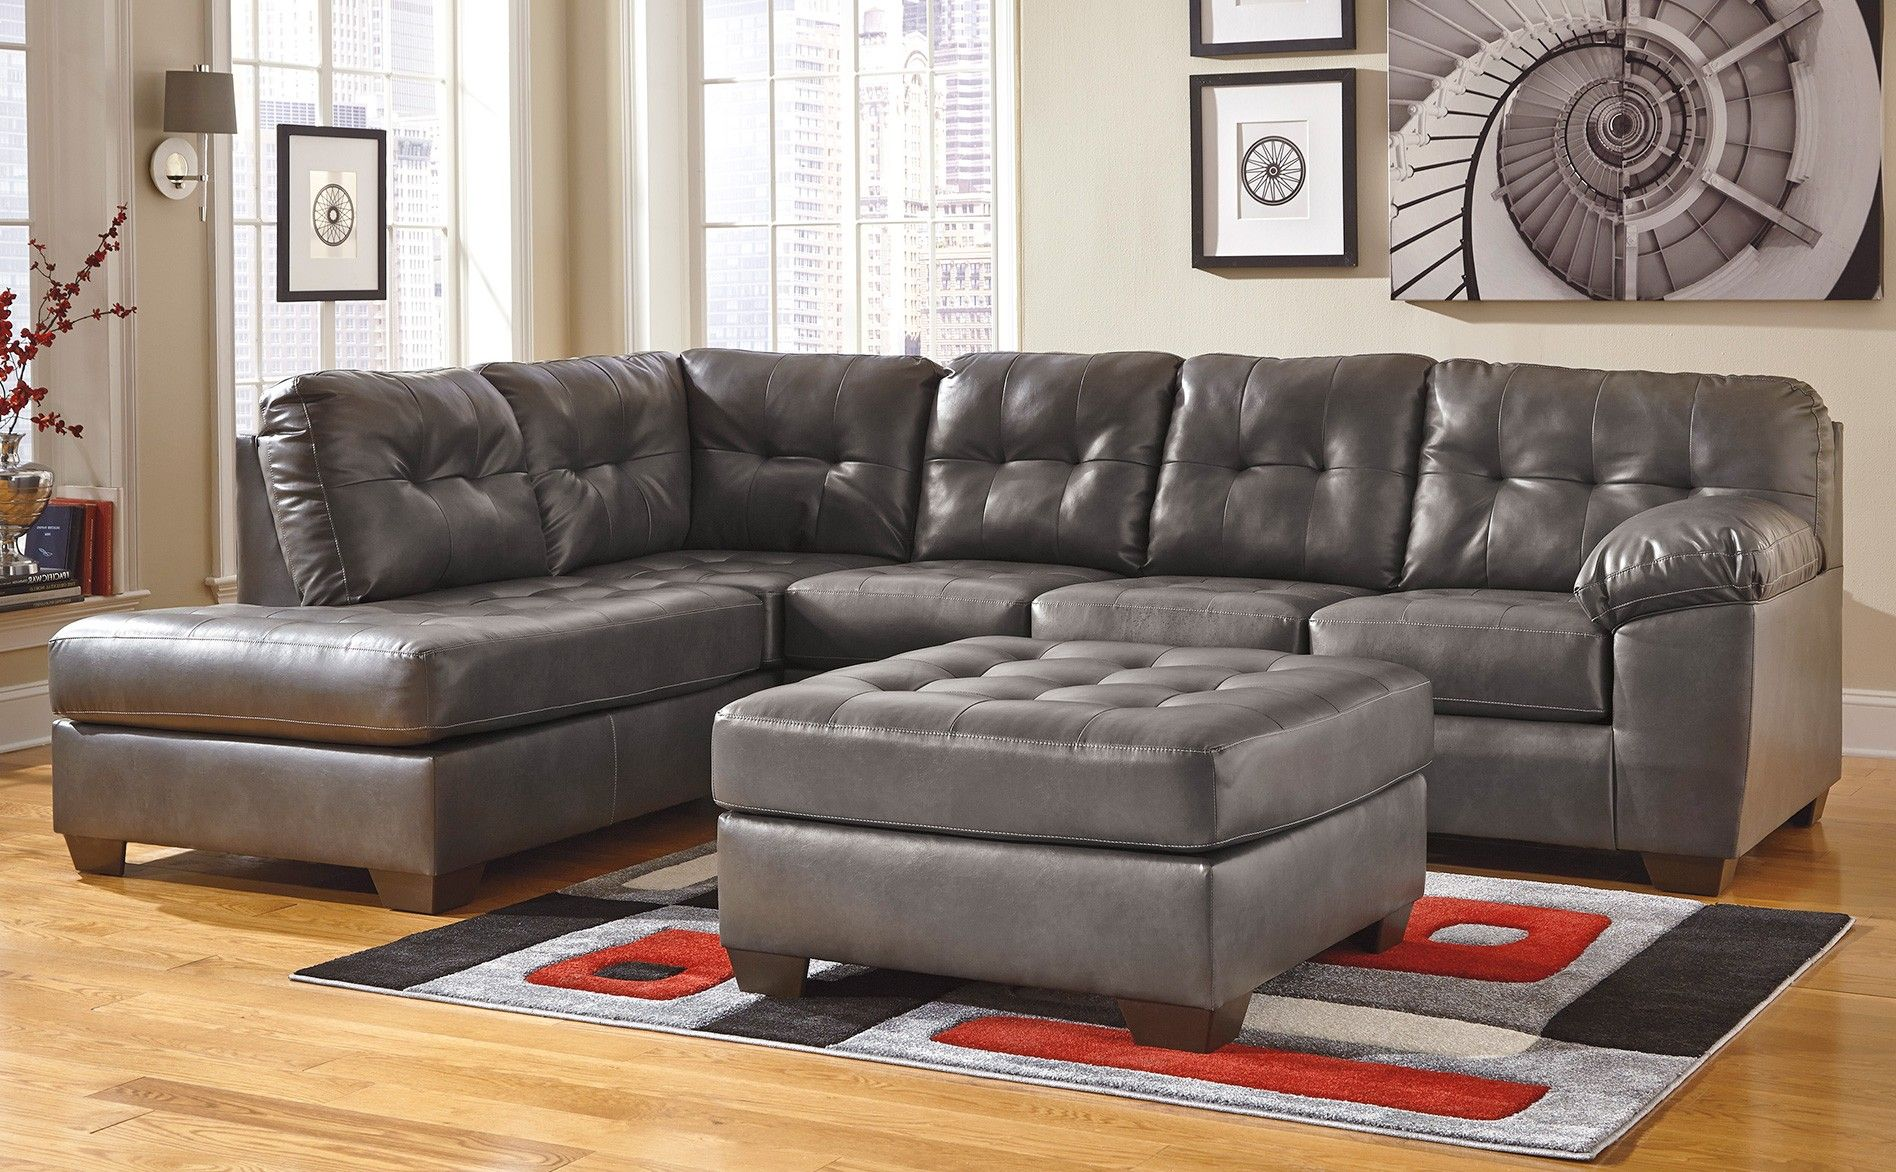 Marlo Furniture Sectional Sofa & Katisha Platinum 2 Piece